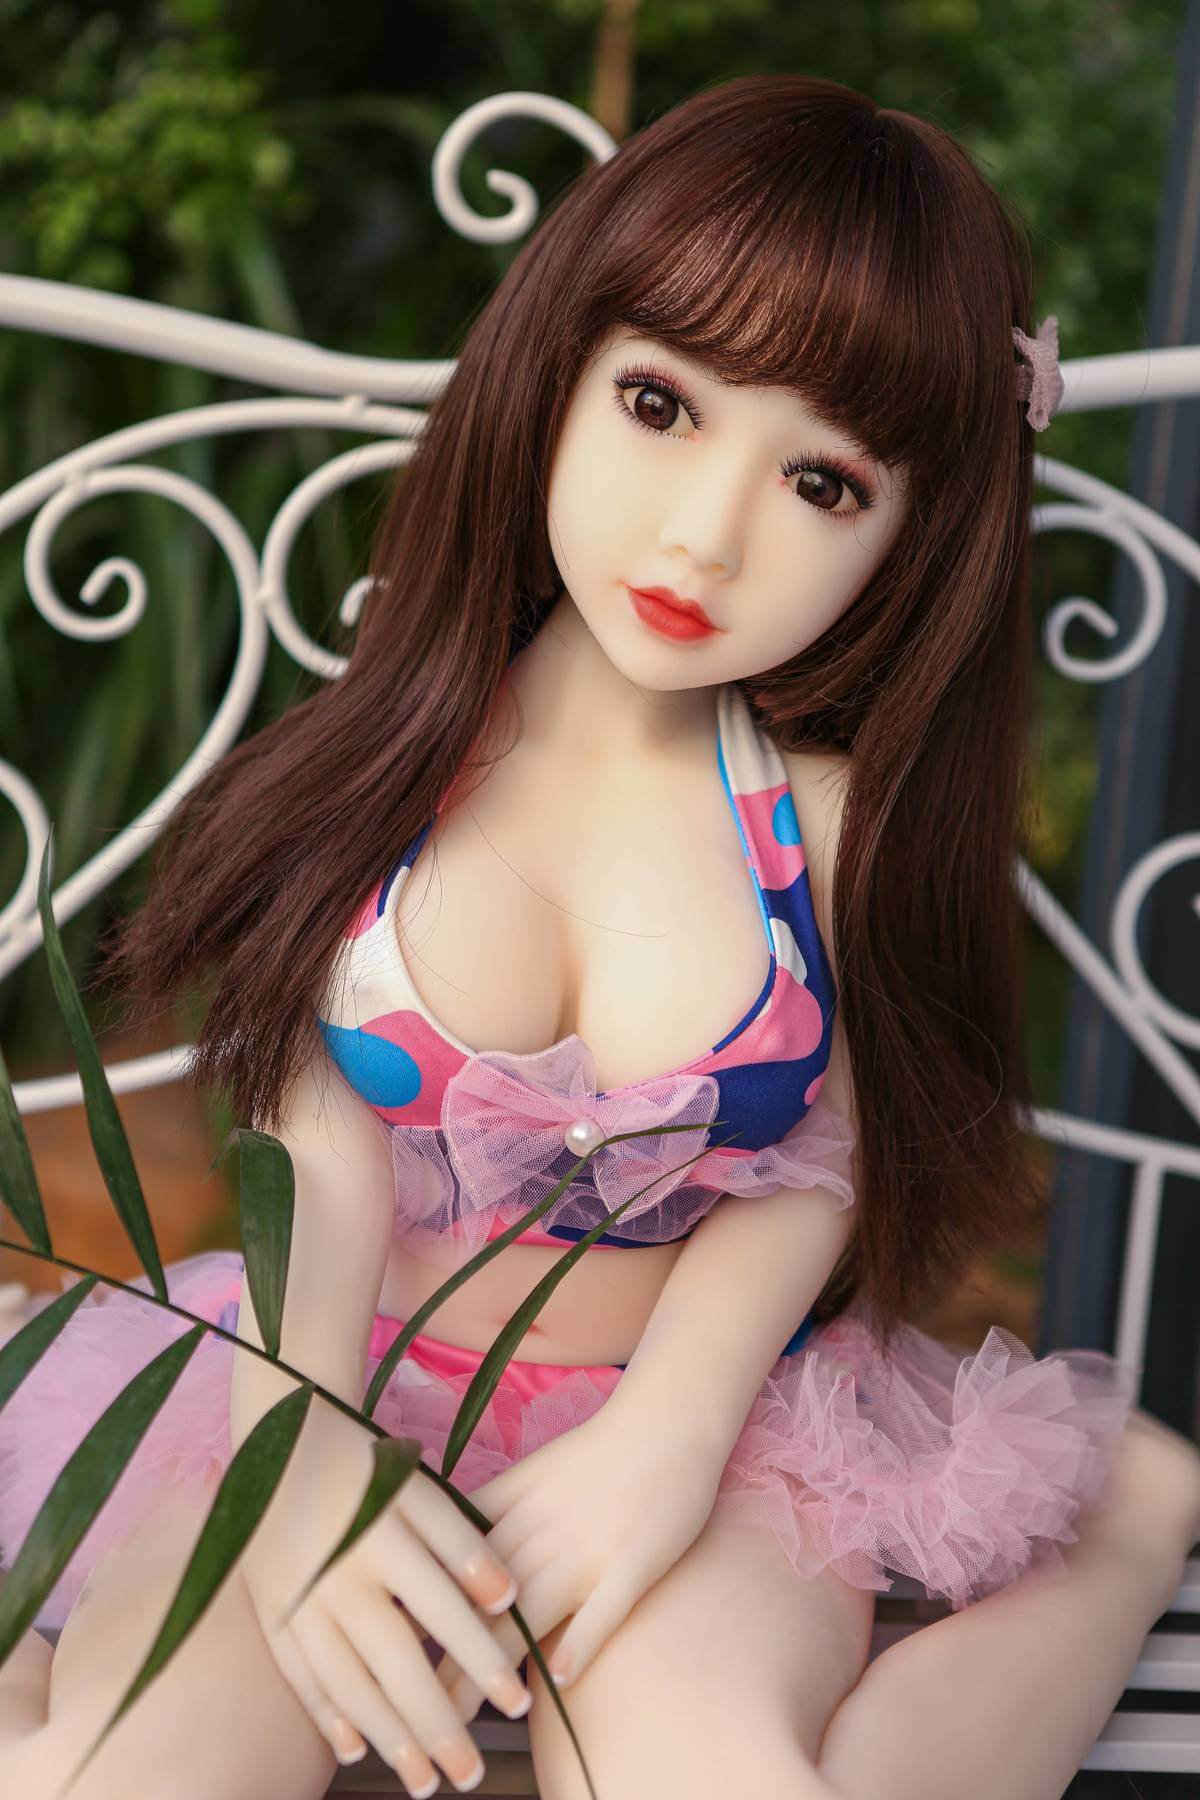 Sex Doll Small love Doll - Lucy